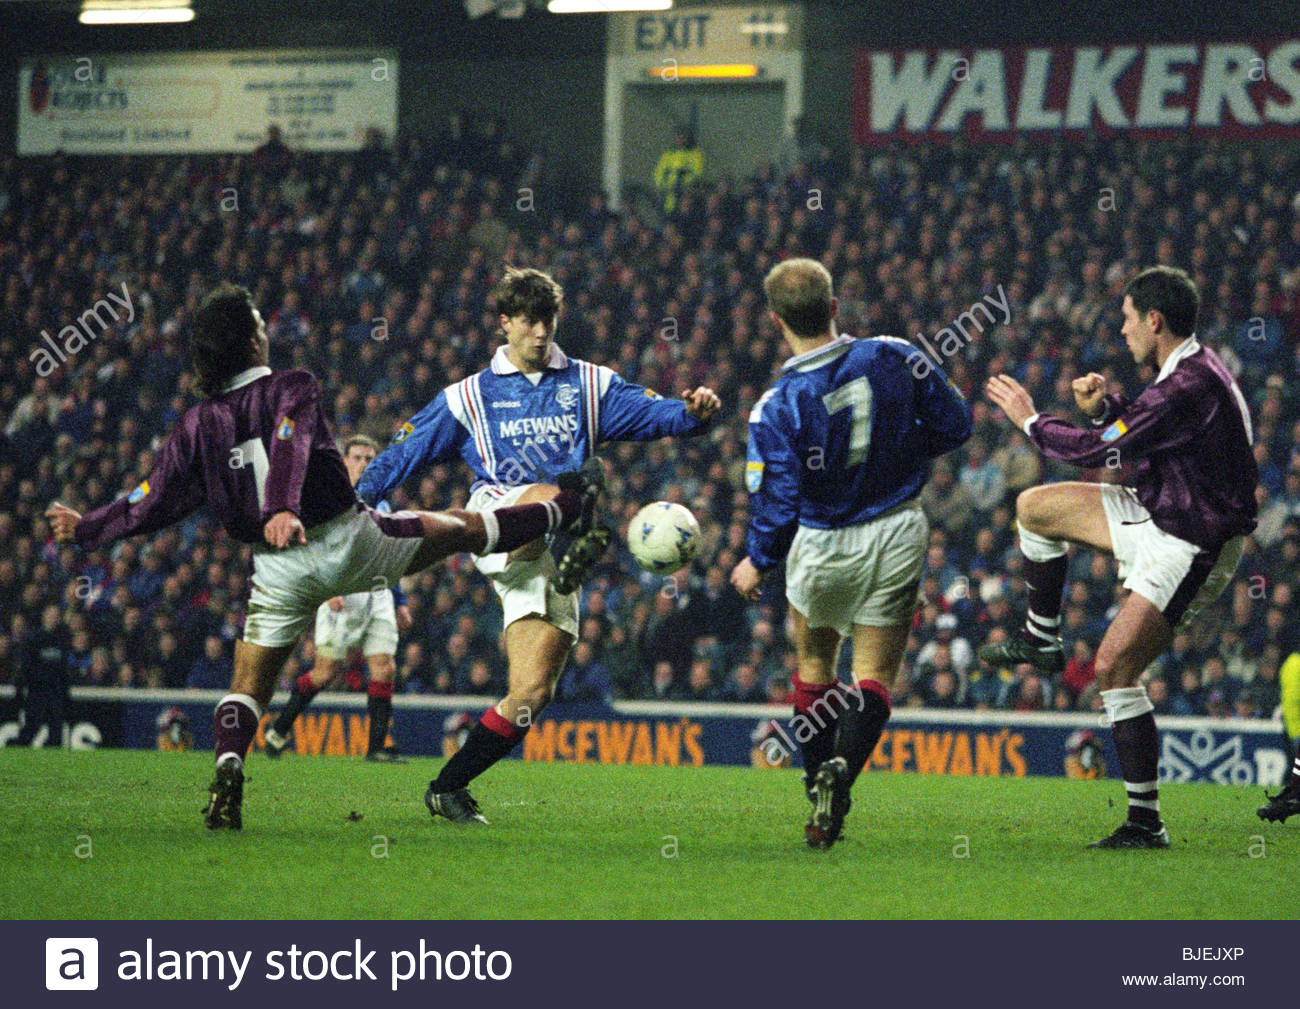 01/02/97 BELL'S PREMIER DIVISION RANGERS V HEARTS (0-0) IBROX - GLASGOW Rangers winger Brian Laudrup is challenged - Stock Image